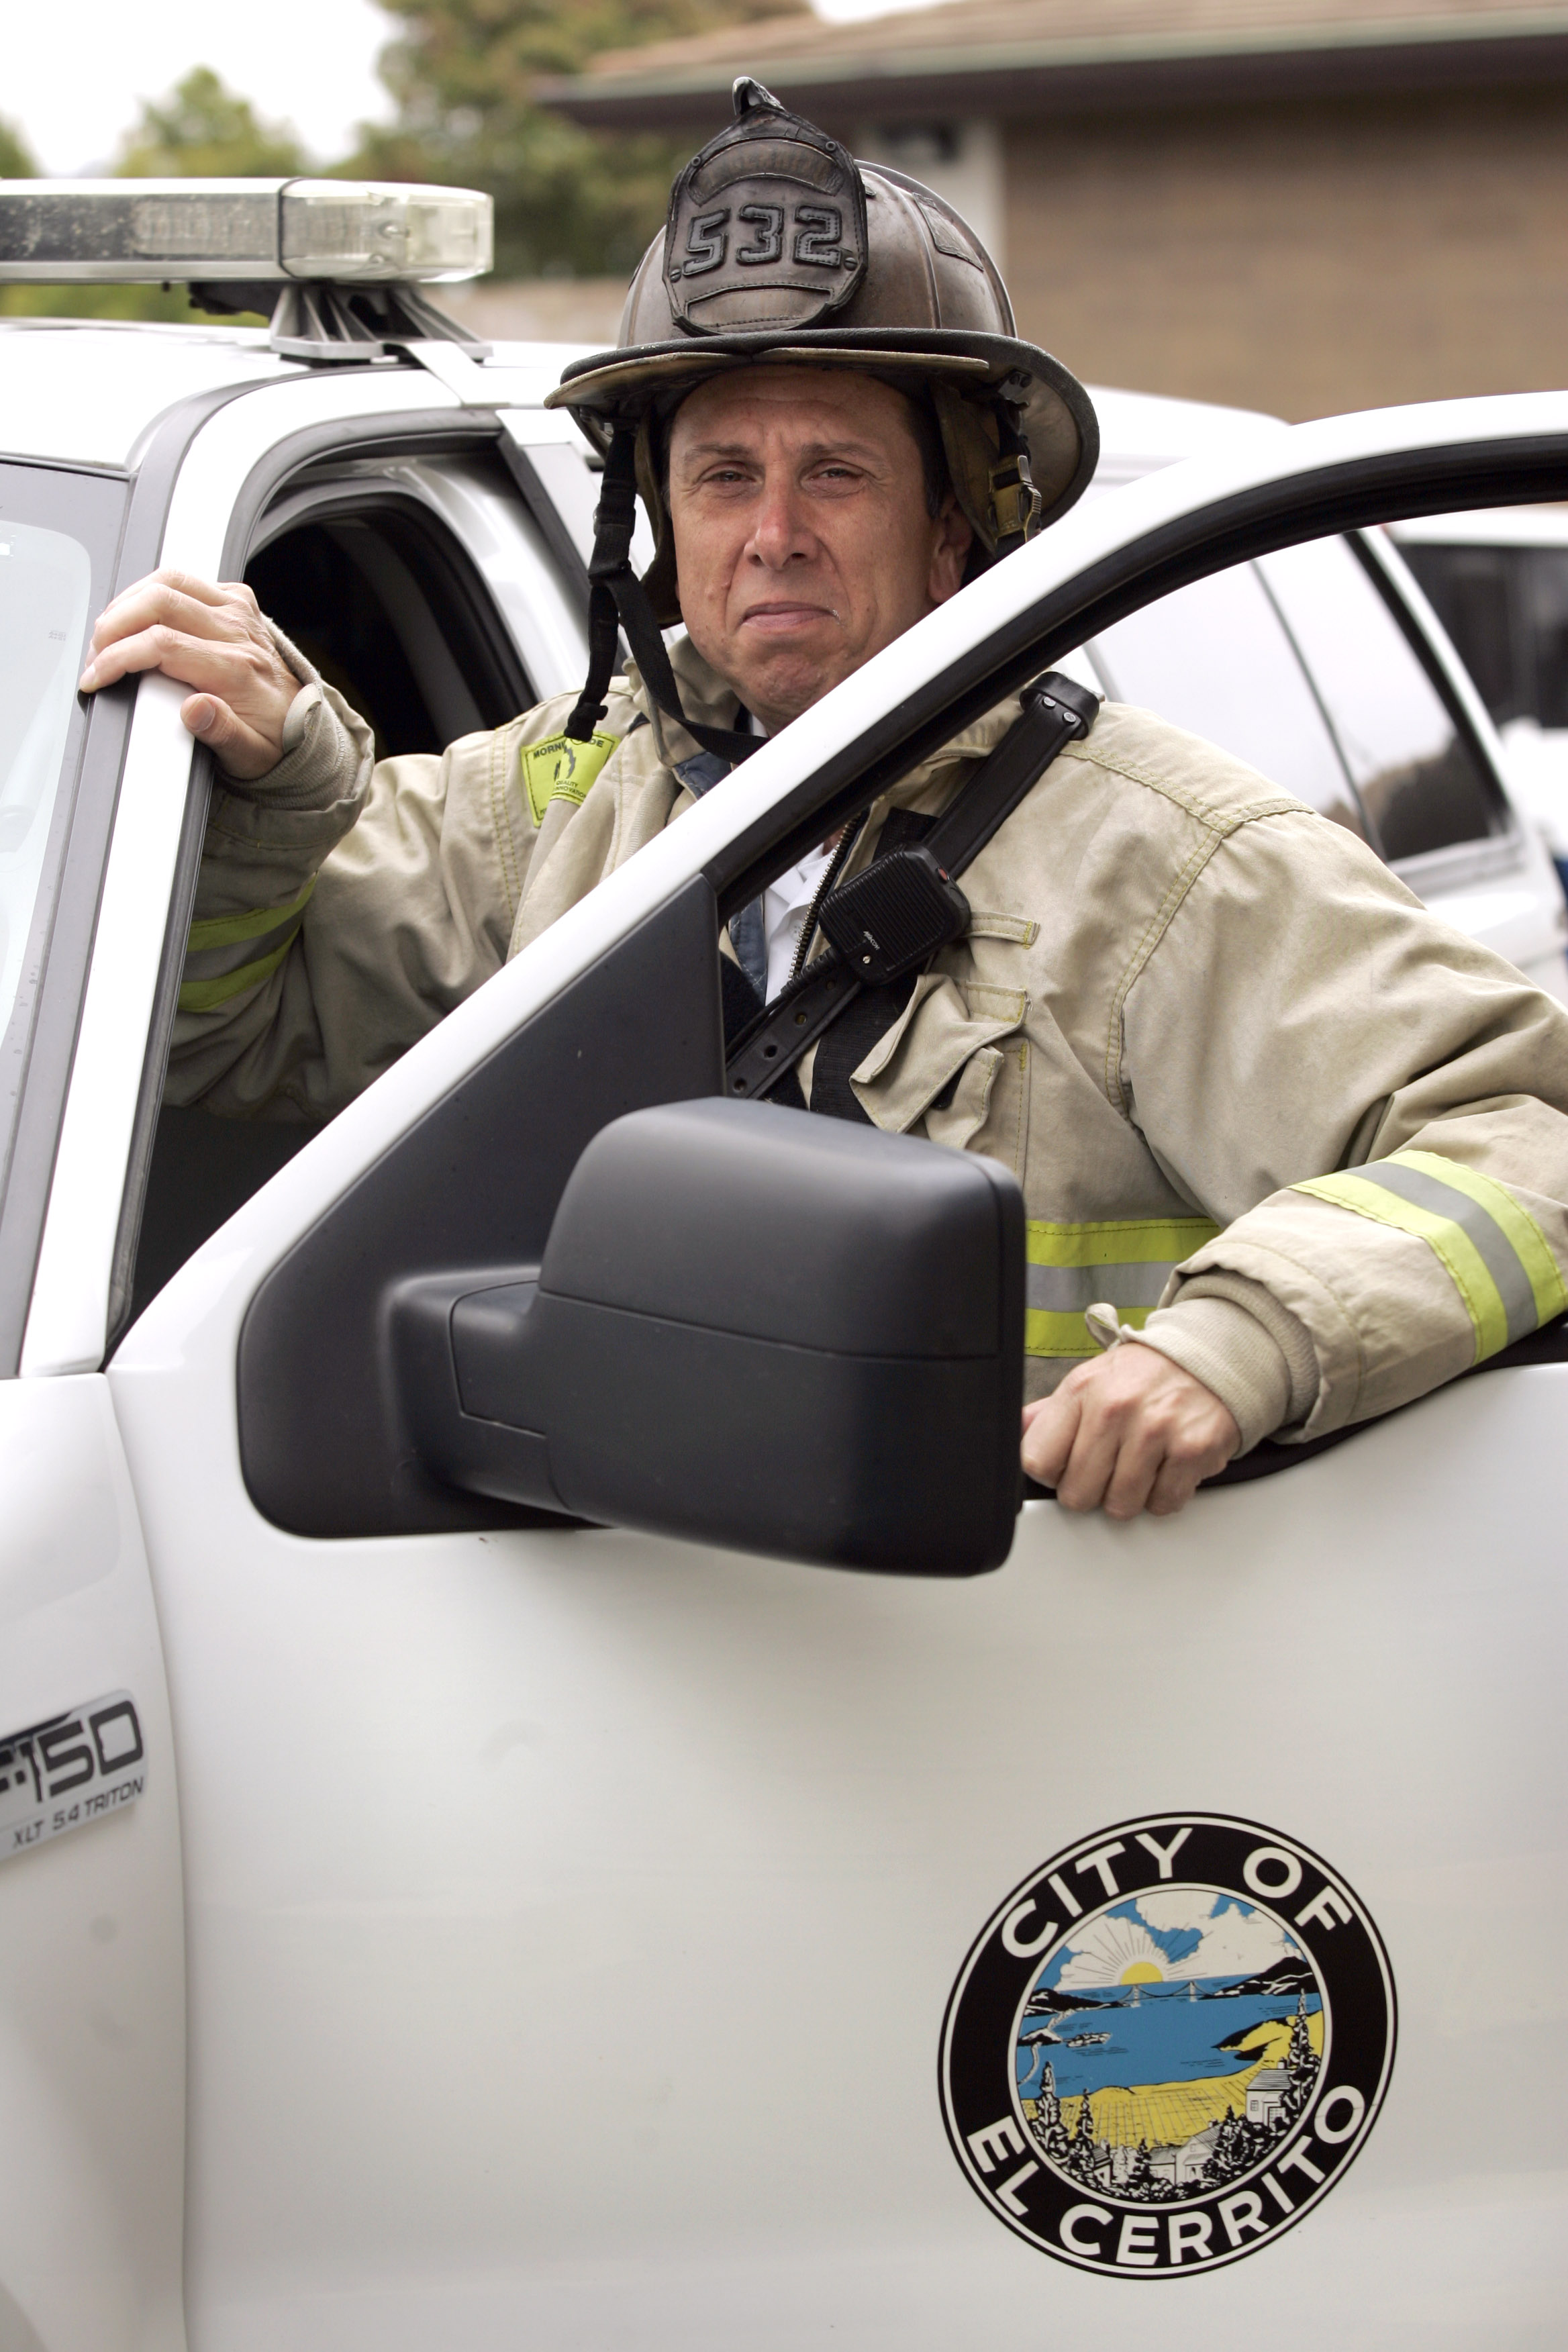 Battalion Chief David Gibson